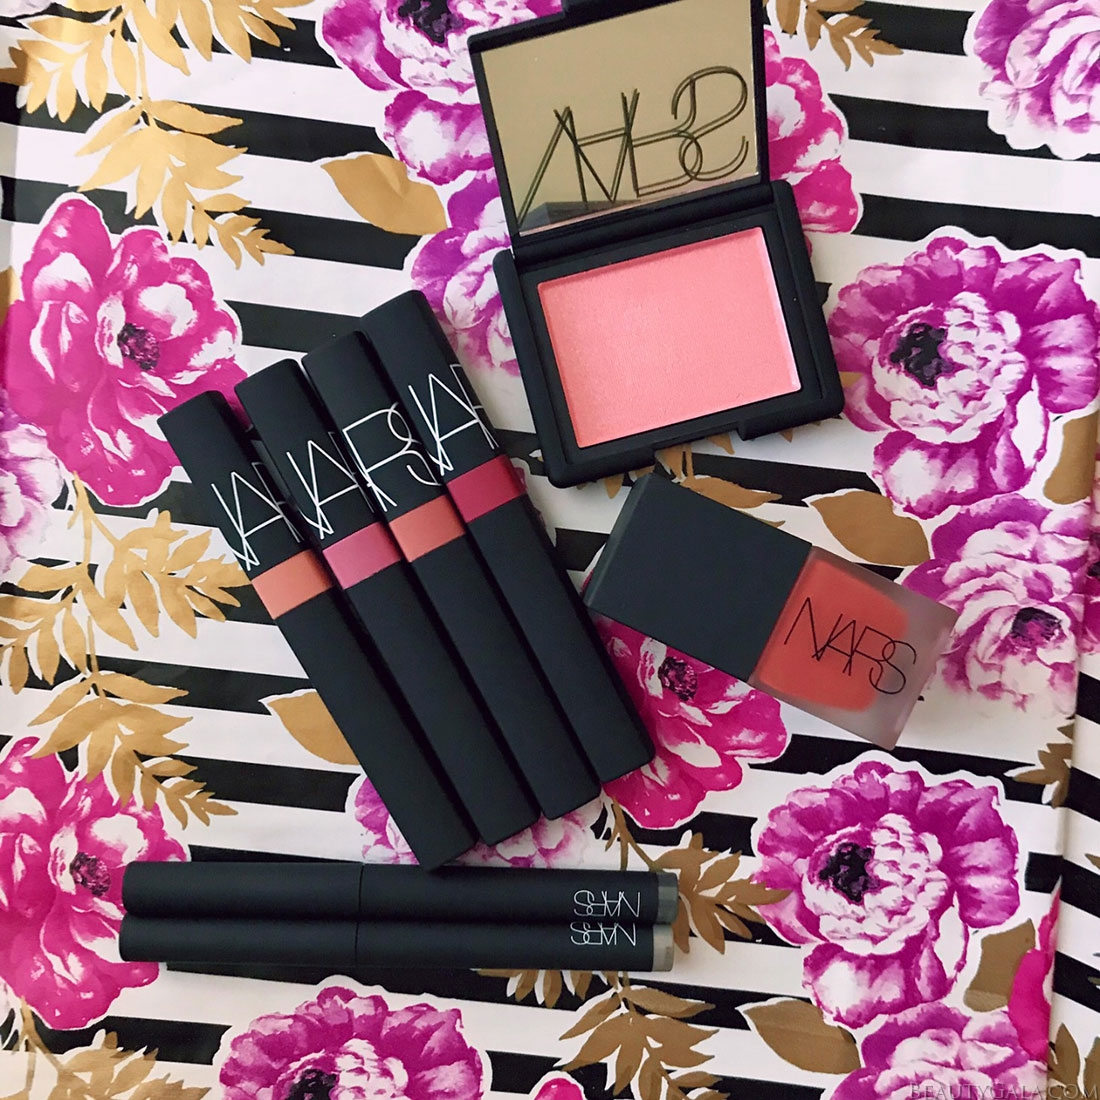 nars spring 2018, nars spring, nars spring collection, nars spring it on